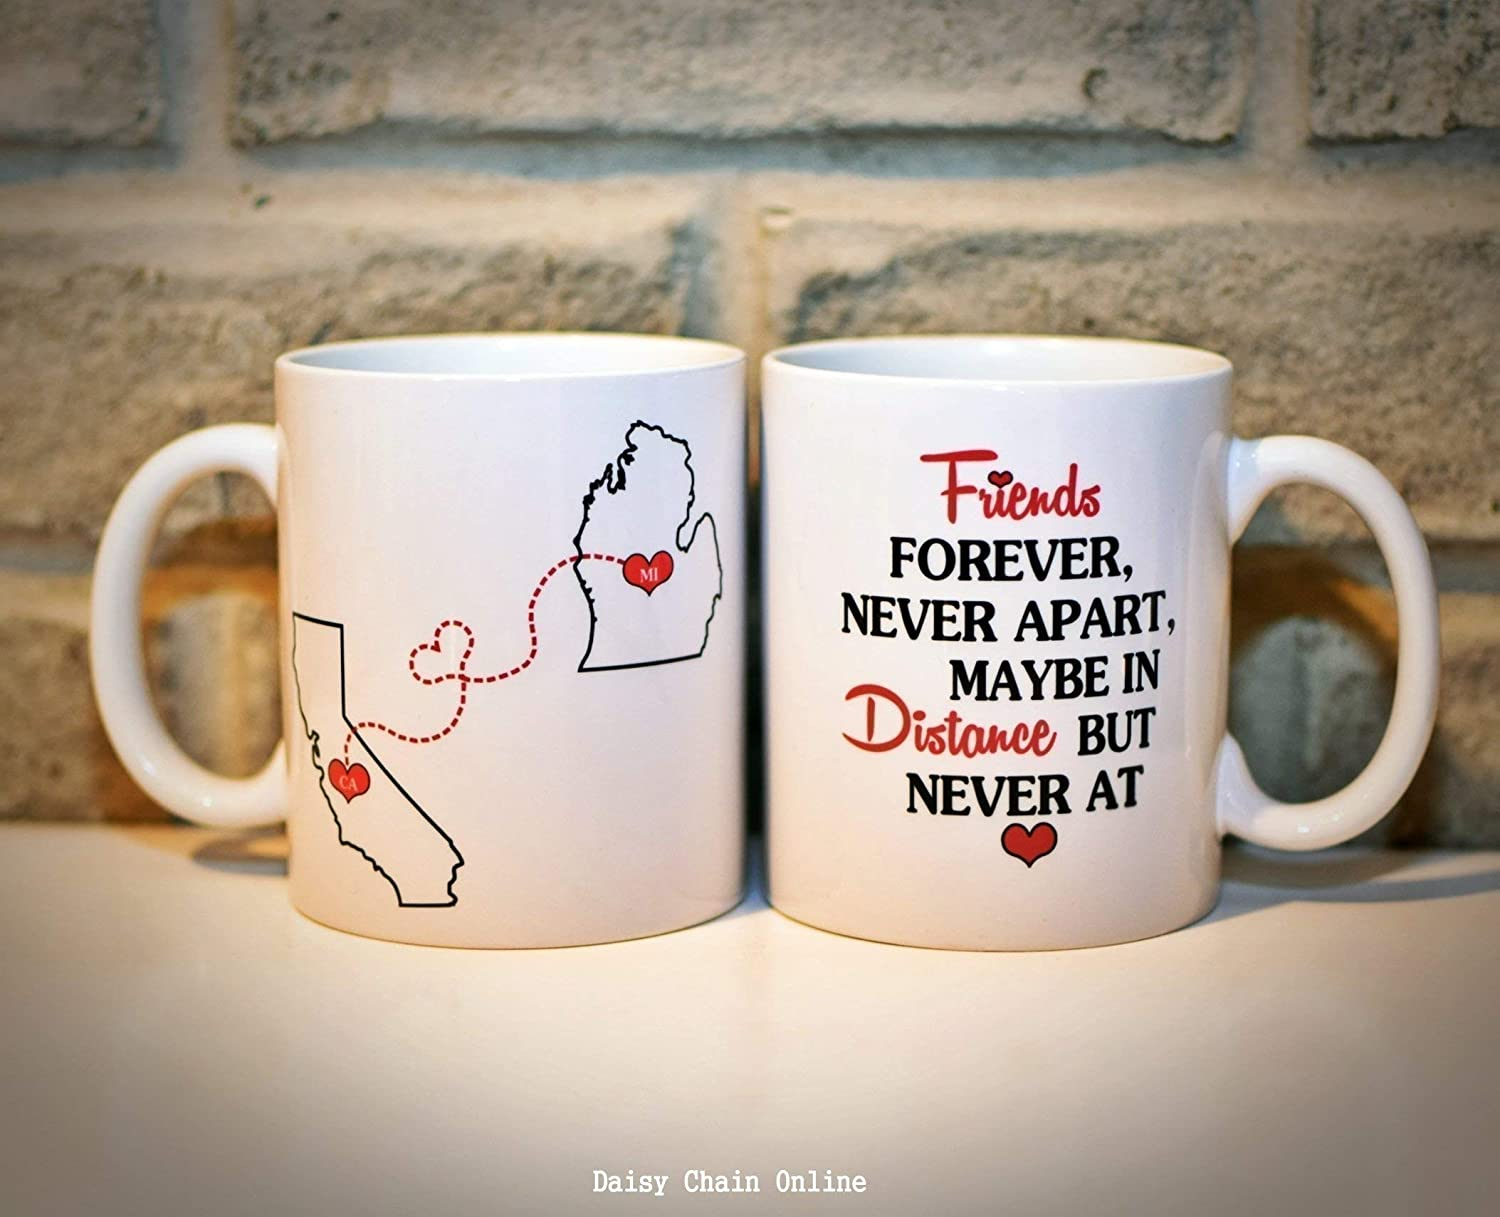 Bff Long Friends StatesCountries Mug Available Custom Distance With State Best QuoteAll Personalized Your Coffee eEDYW9H2I